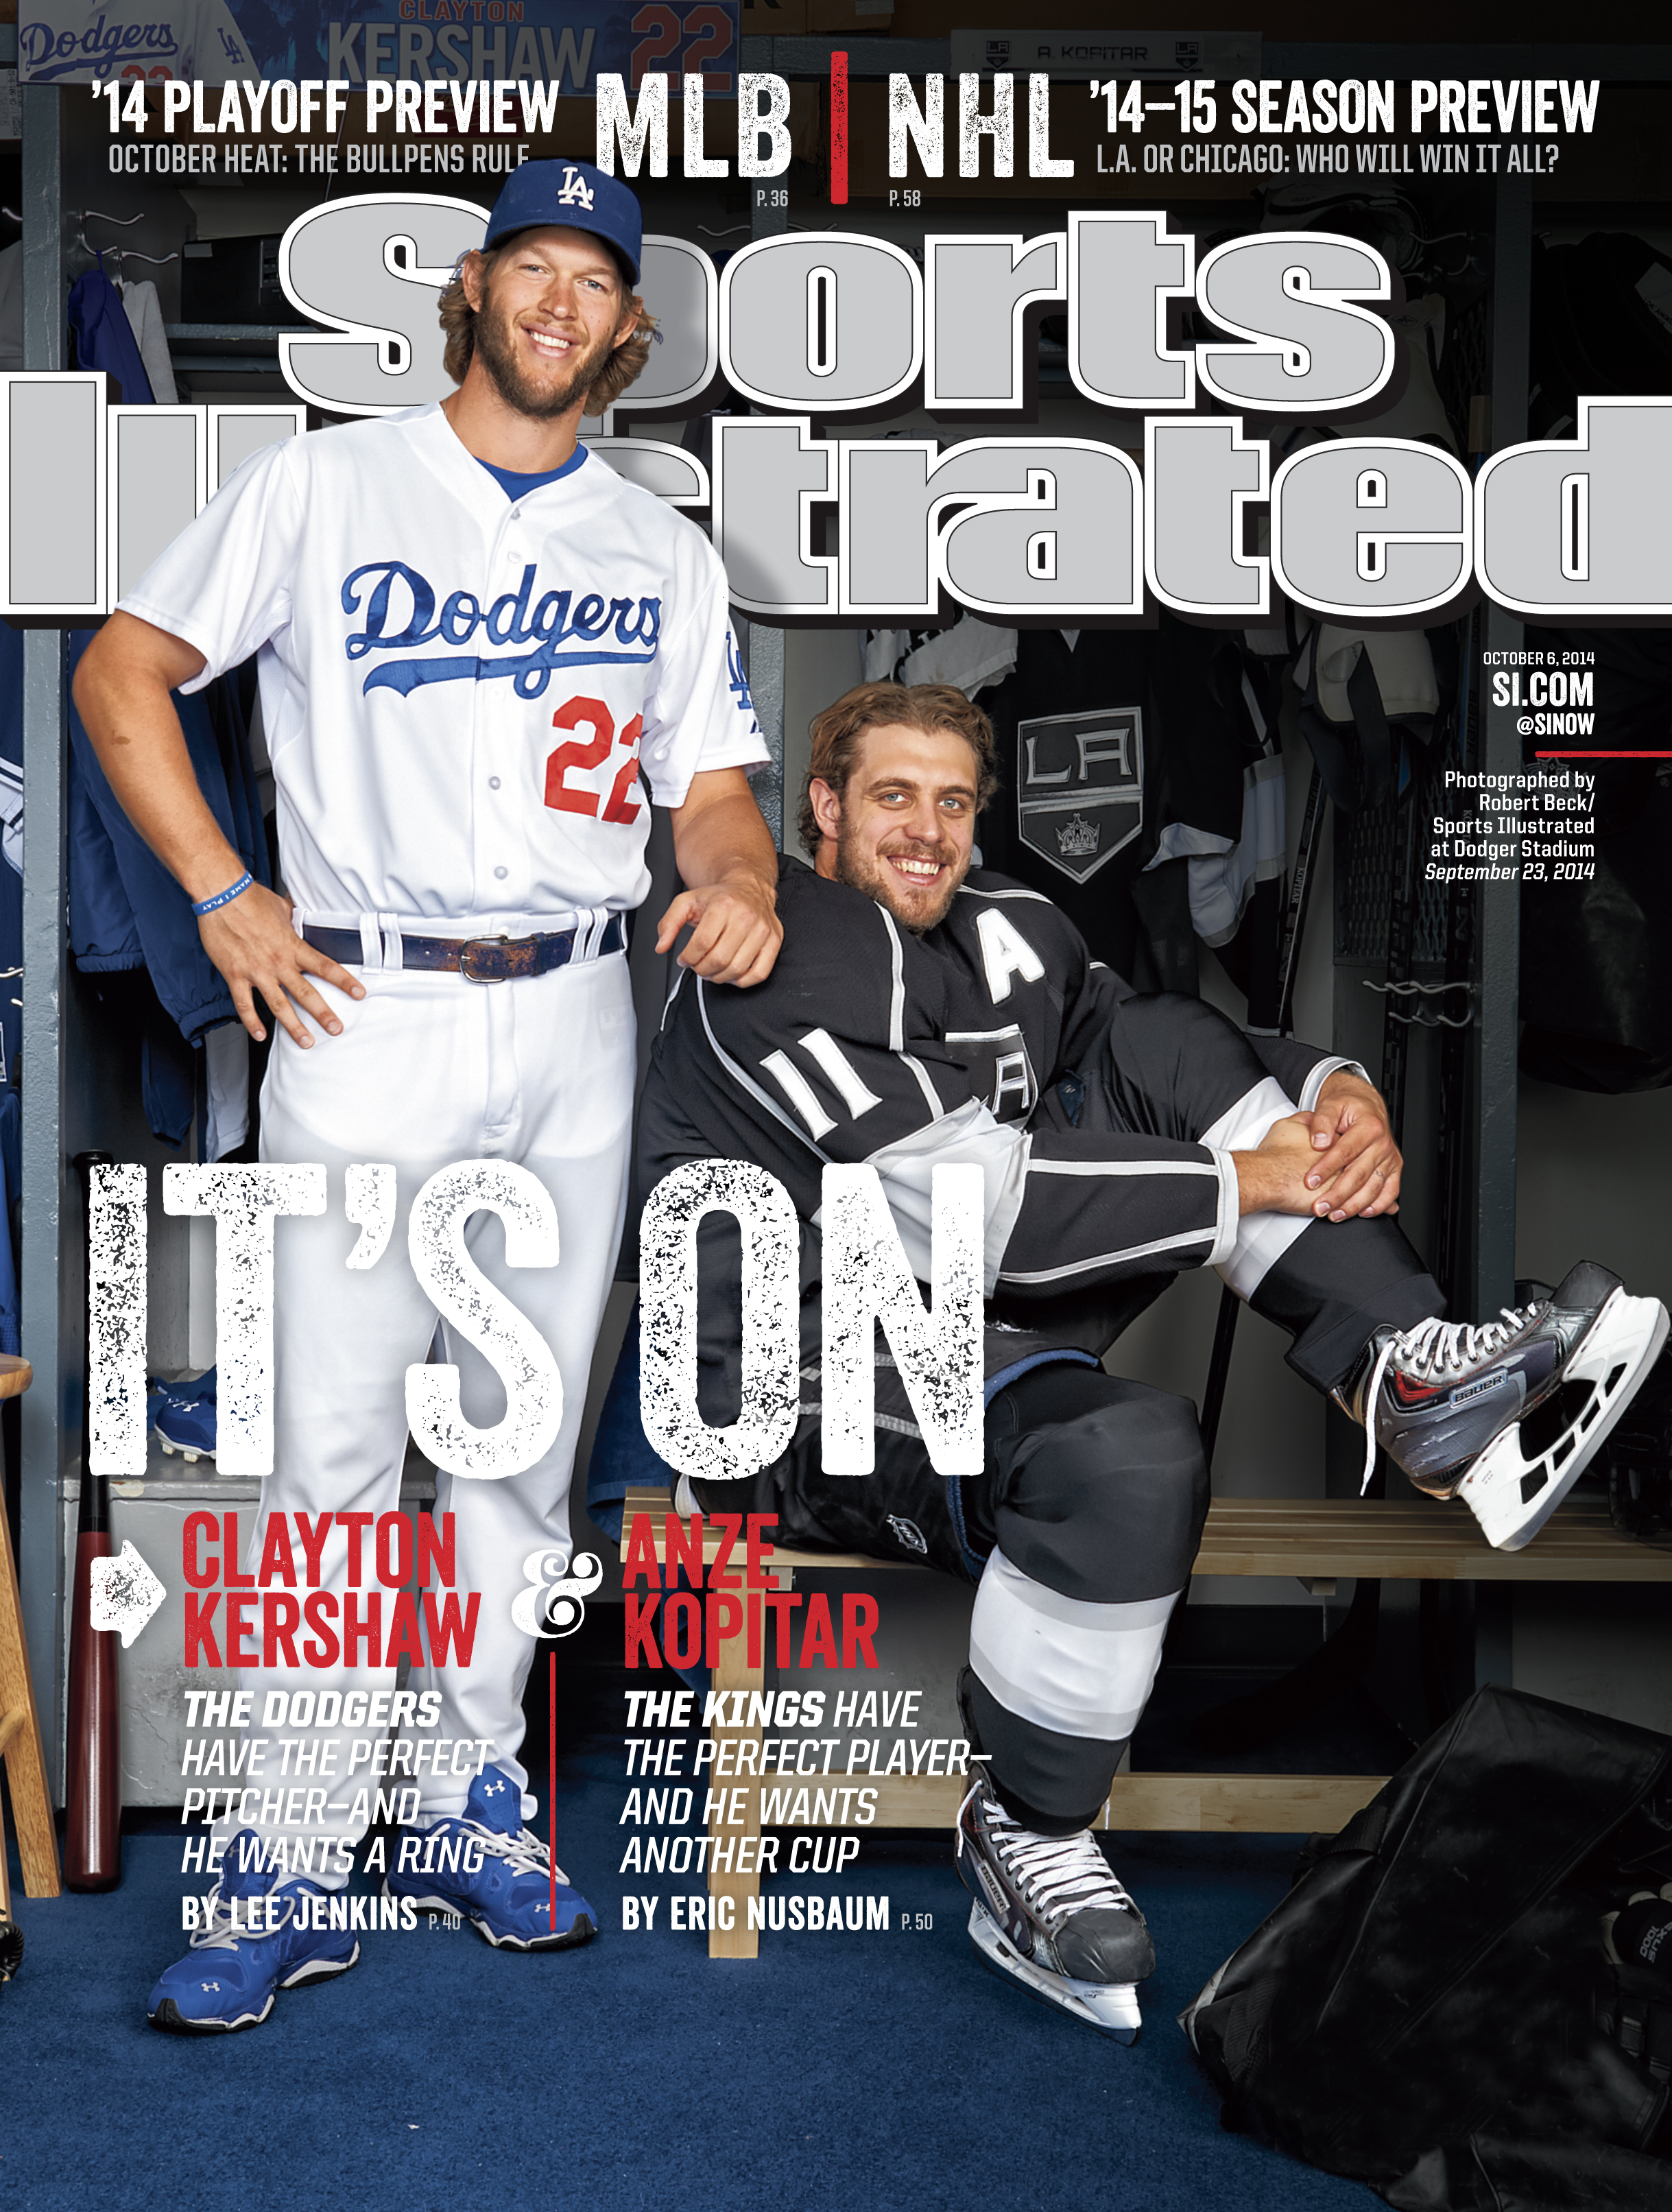 October 6, 2014 | Although Los Angeles has no NFL team, Dodgers ace Clayton Kershaw and Kings forward Anze Kopitar are making sure that fans in the area don't miss America's most popular sport.